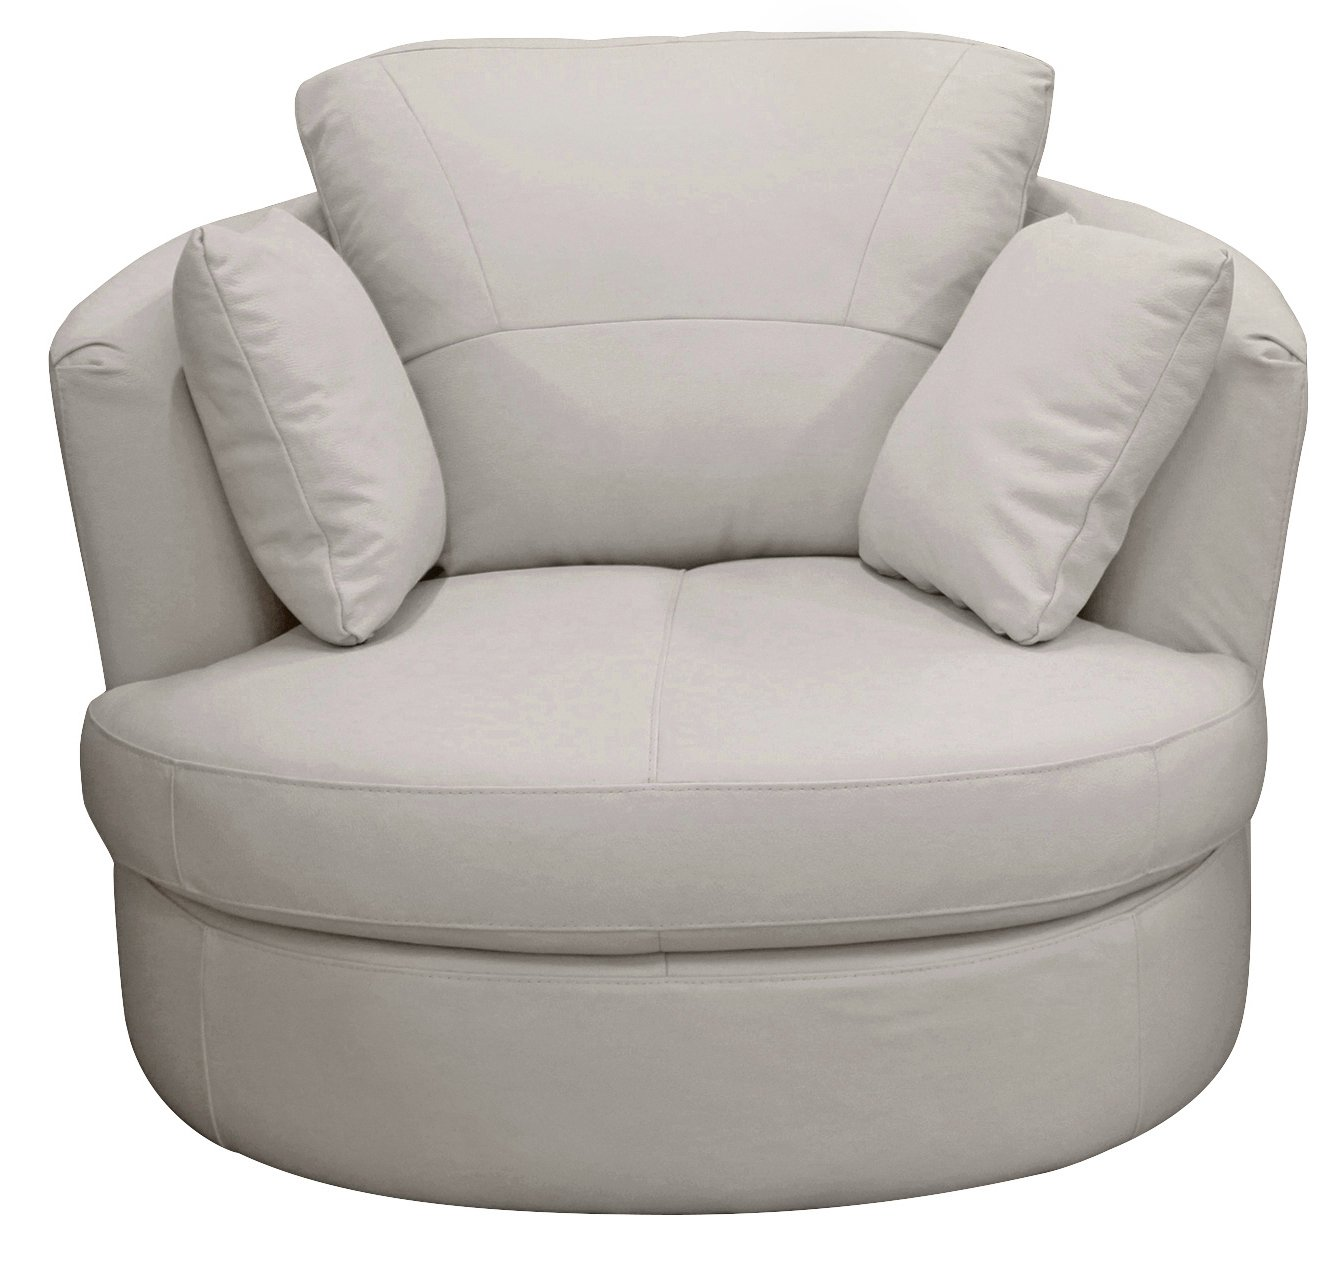 Argos Home Milano Leather Swivel Chair - Light Grey